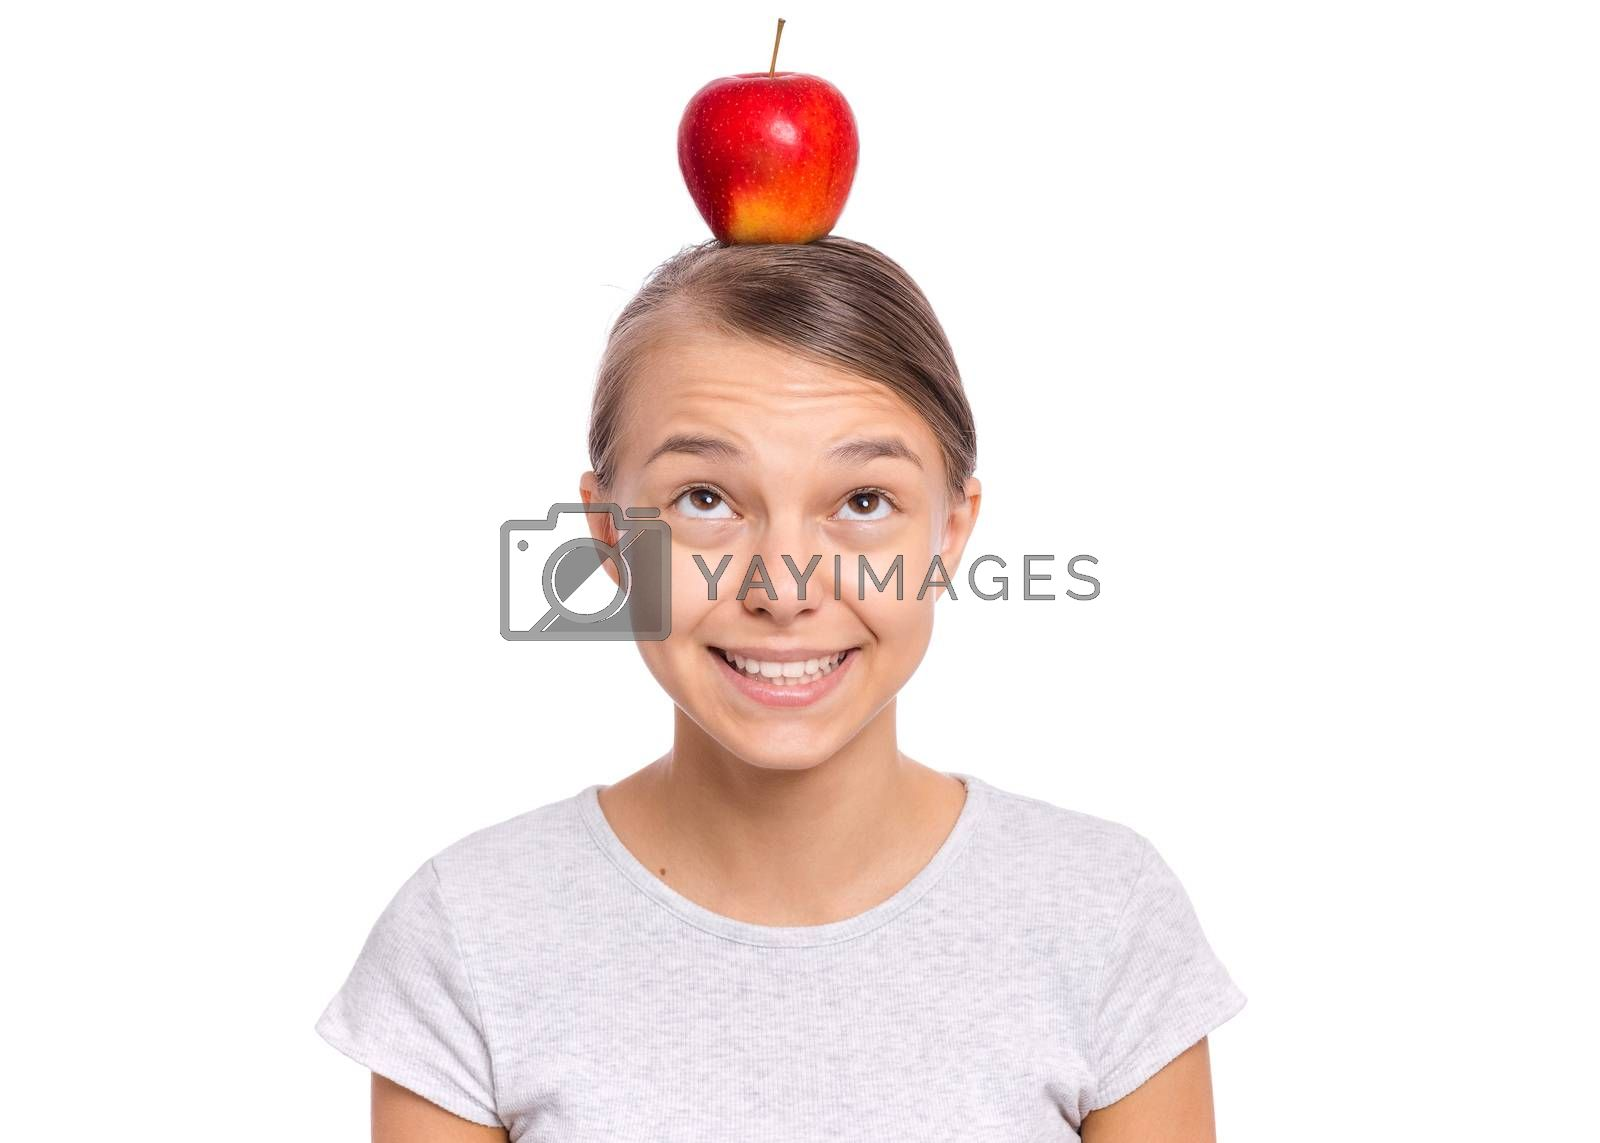 Happy beautiful young teen girl with apple on head, isolated on white background